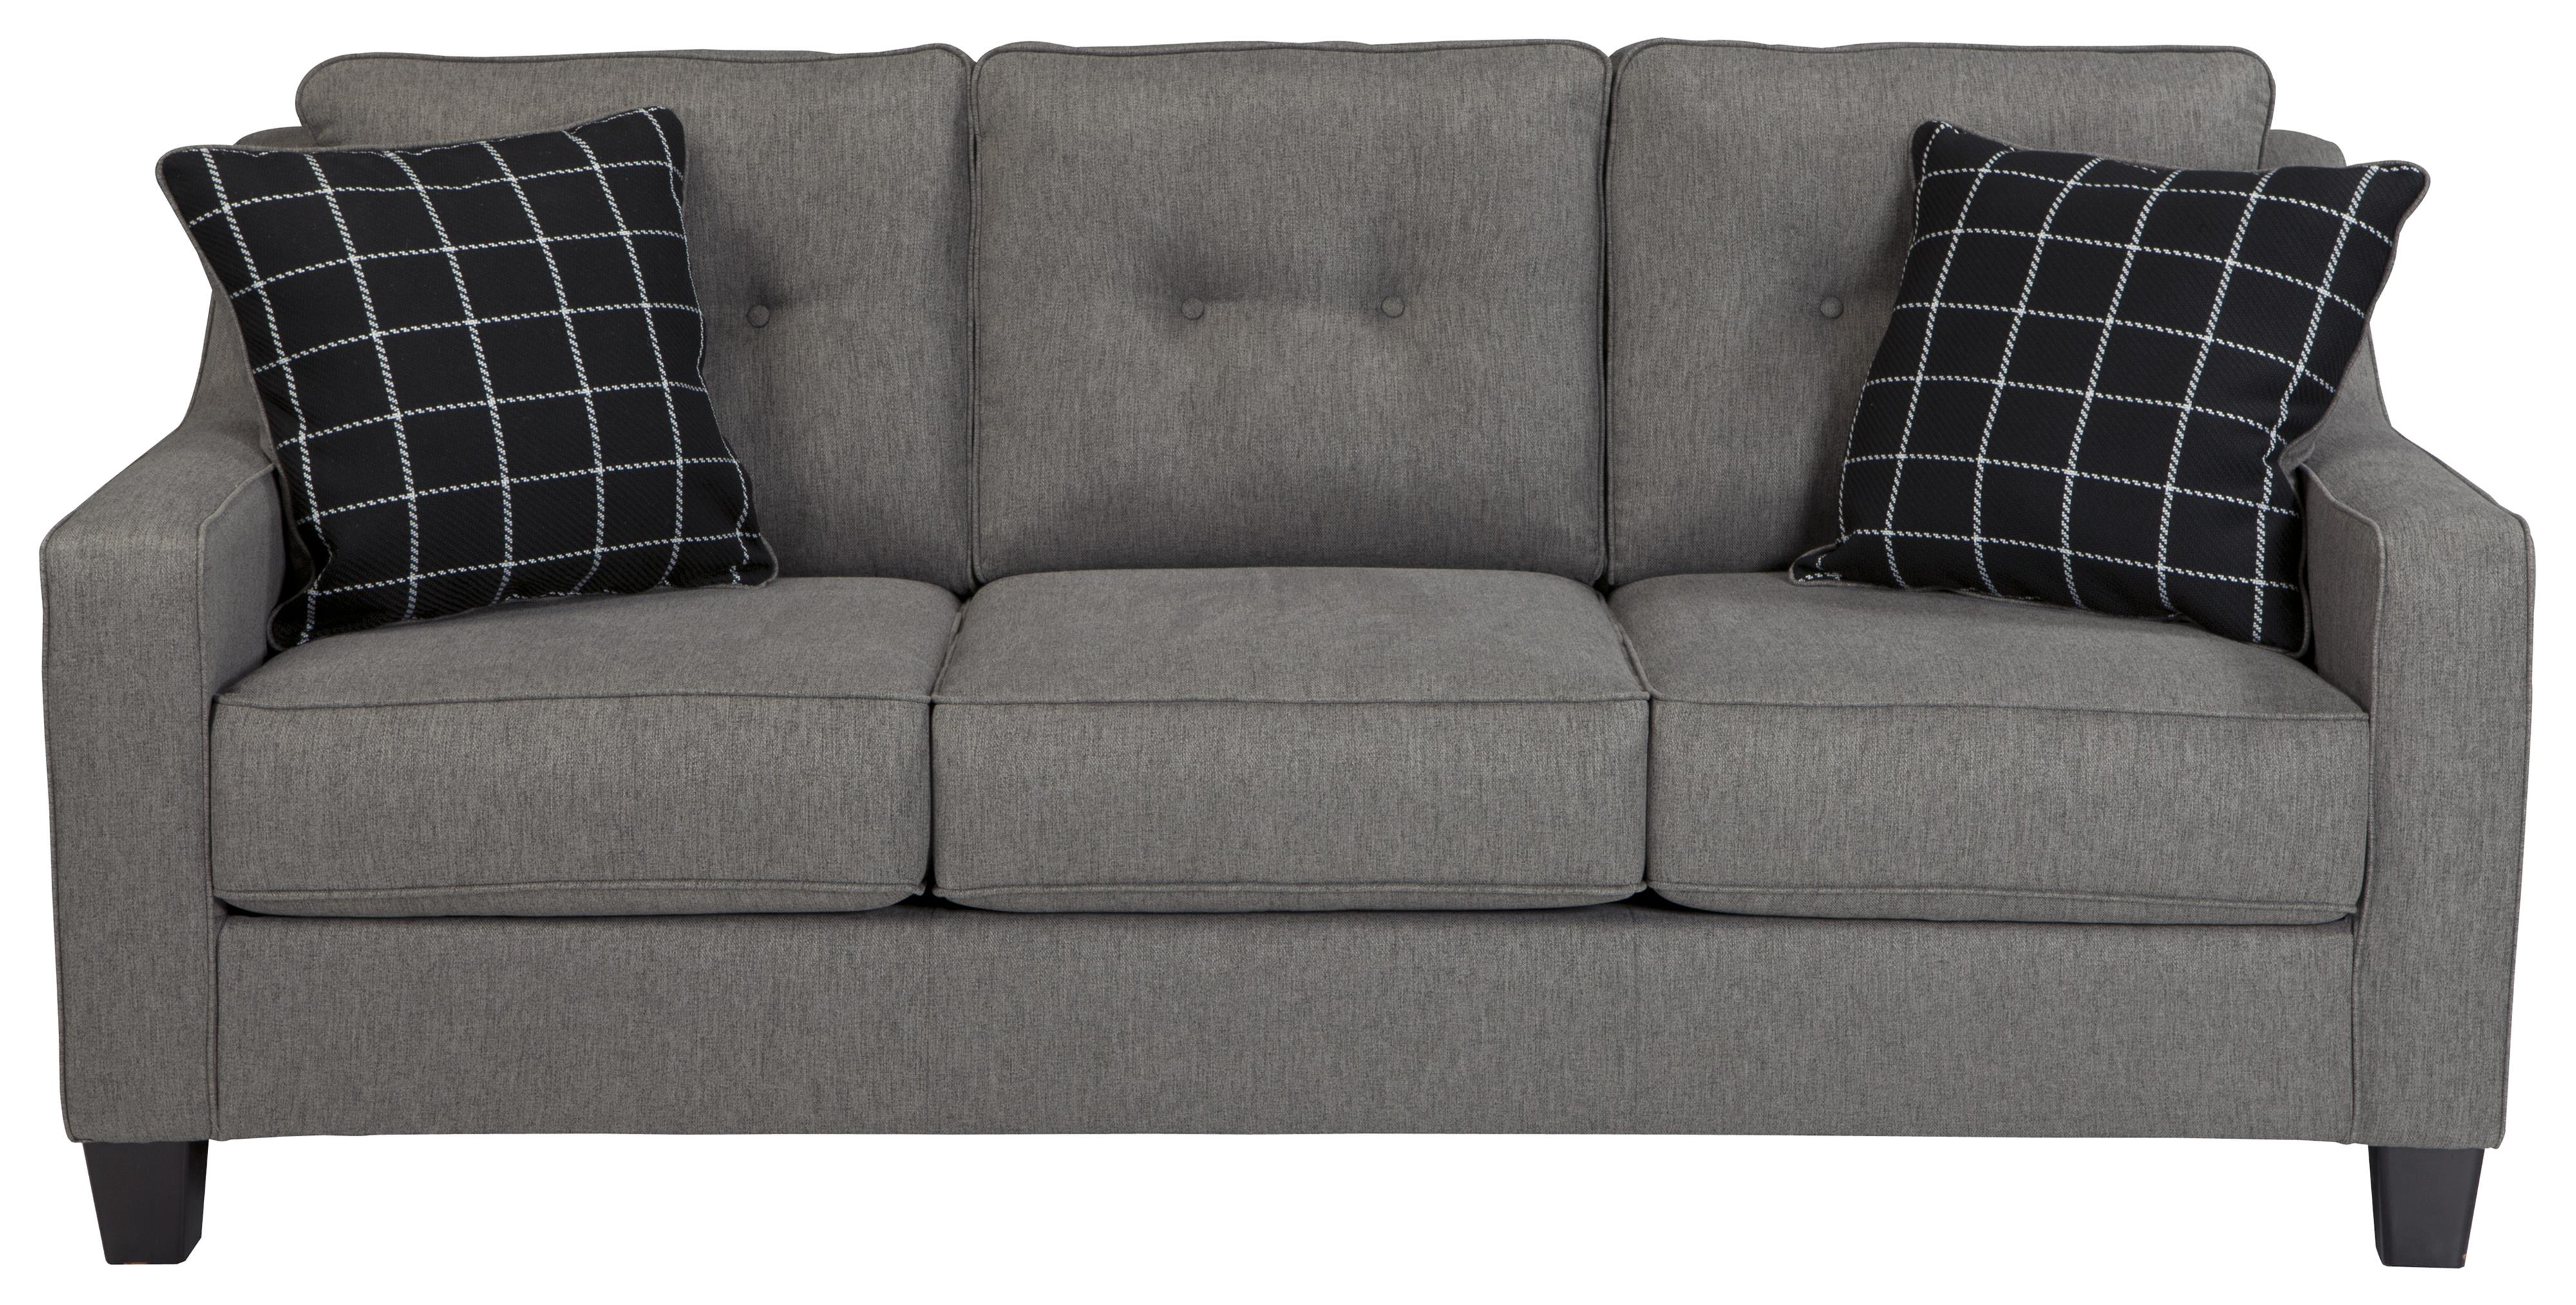 Brindon Sofa by Benchcraft at Miller Waldrop Furniture and Decor